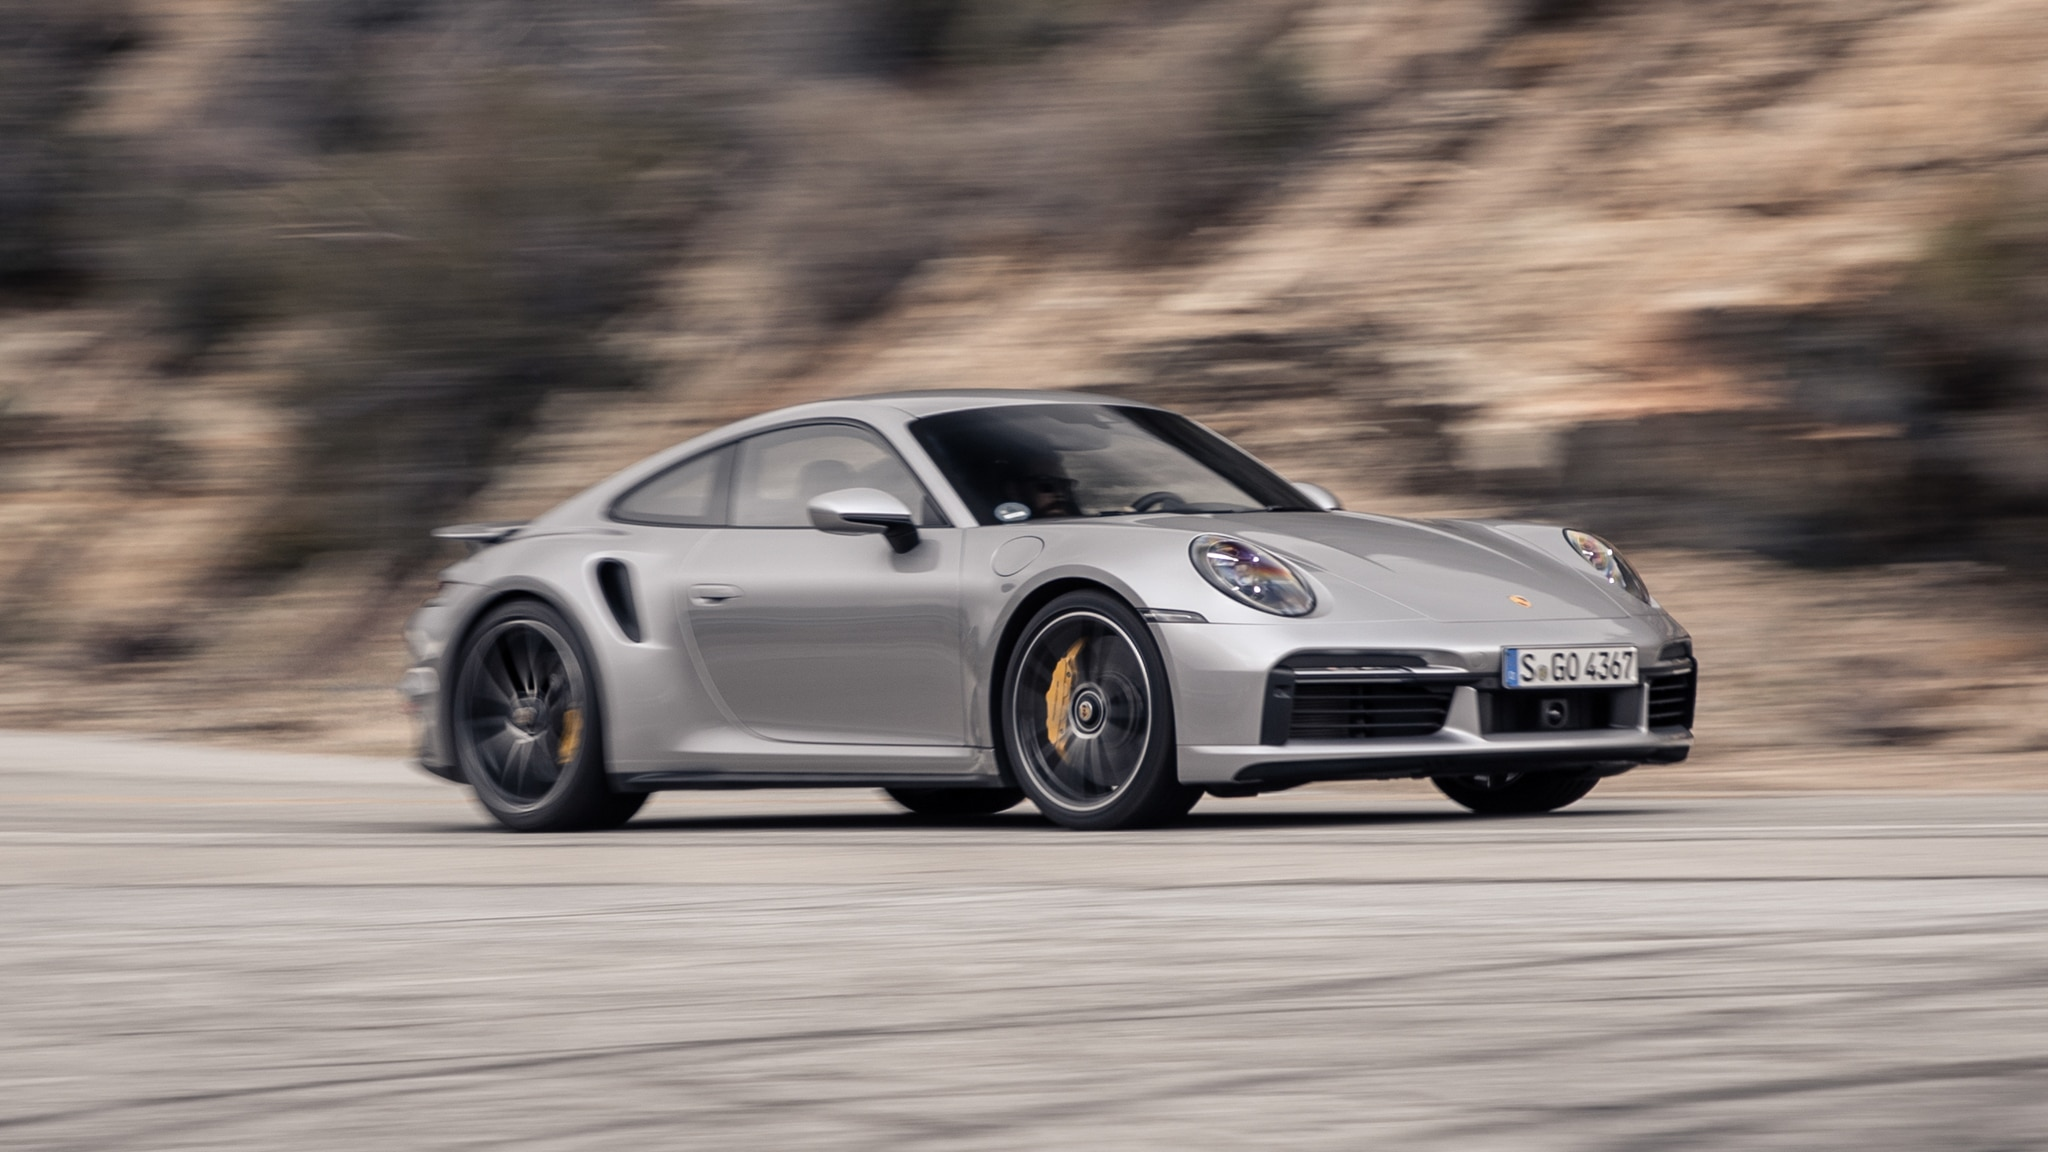 2021 Porsche 911 Turbo S First Drive Review How Is This Even Possible